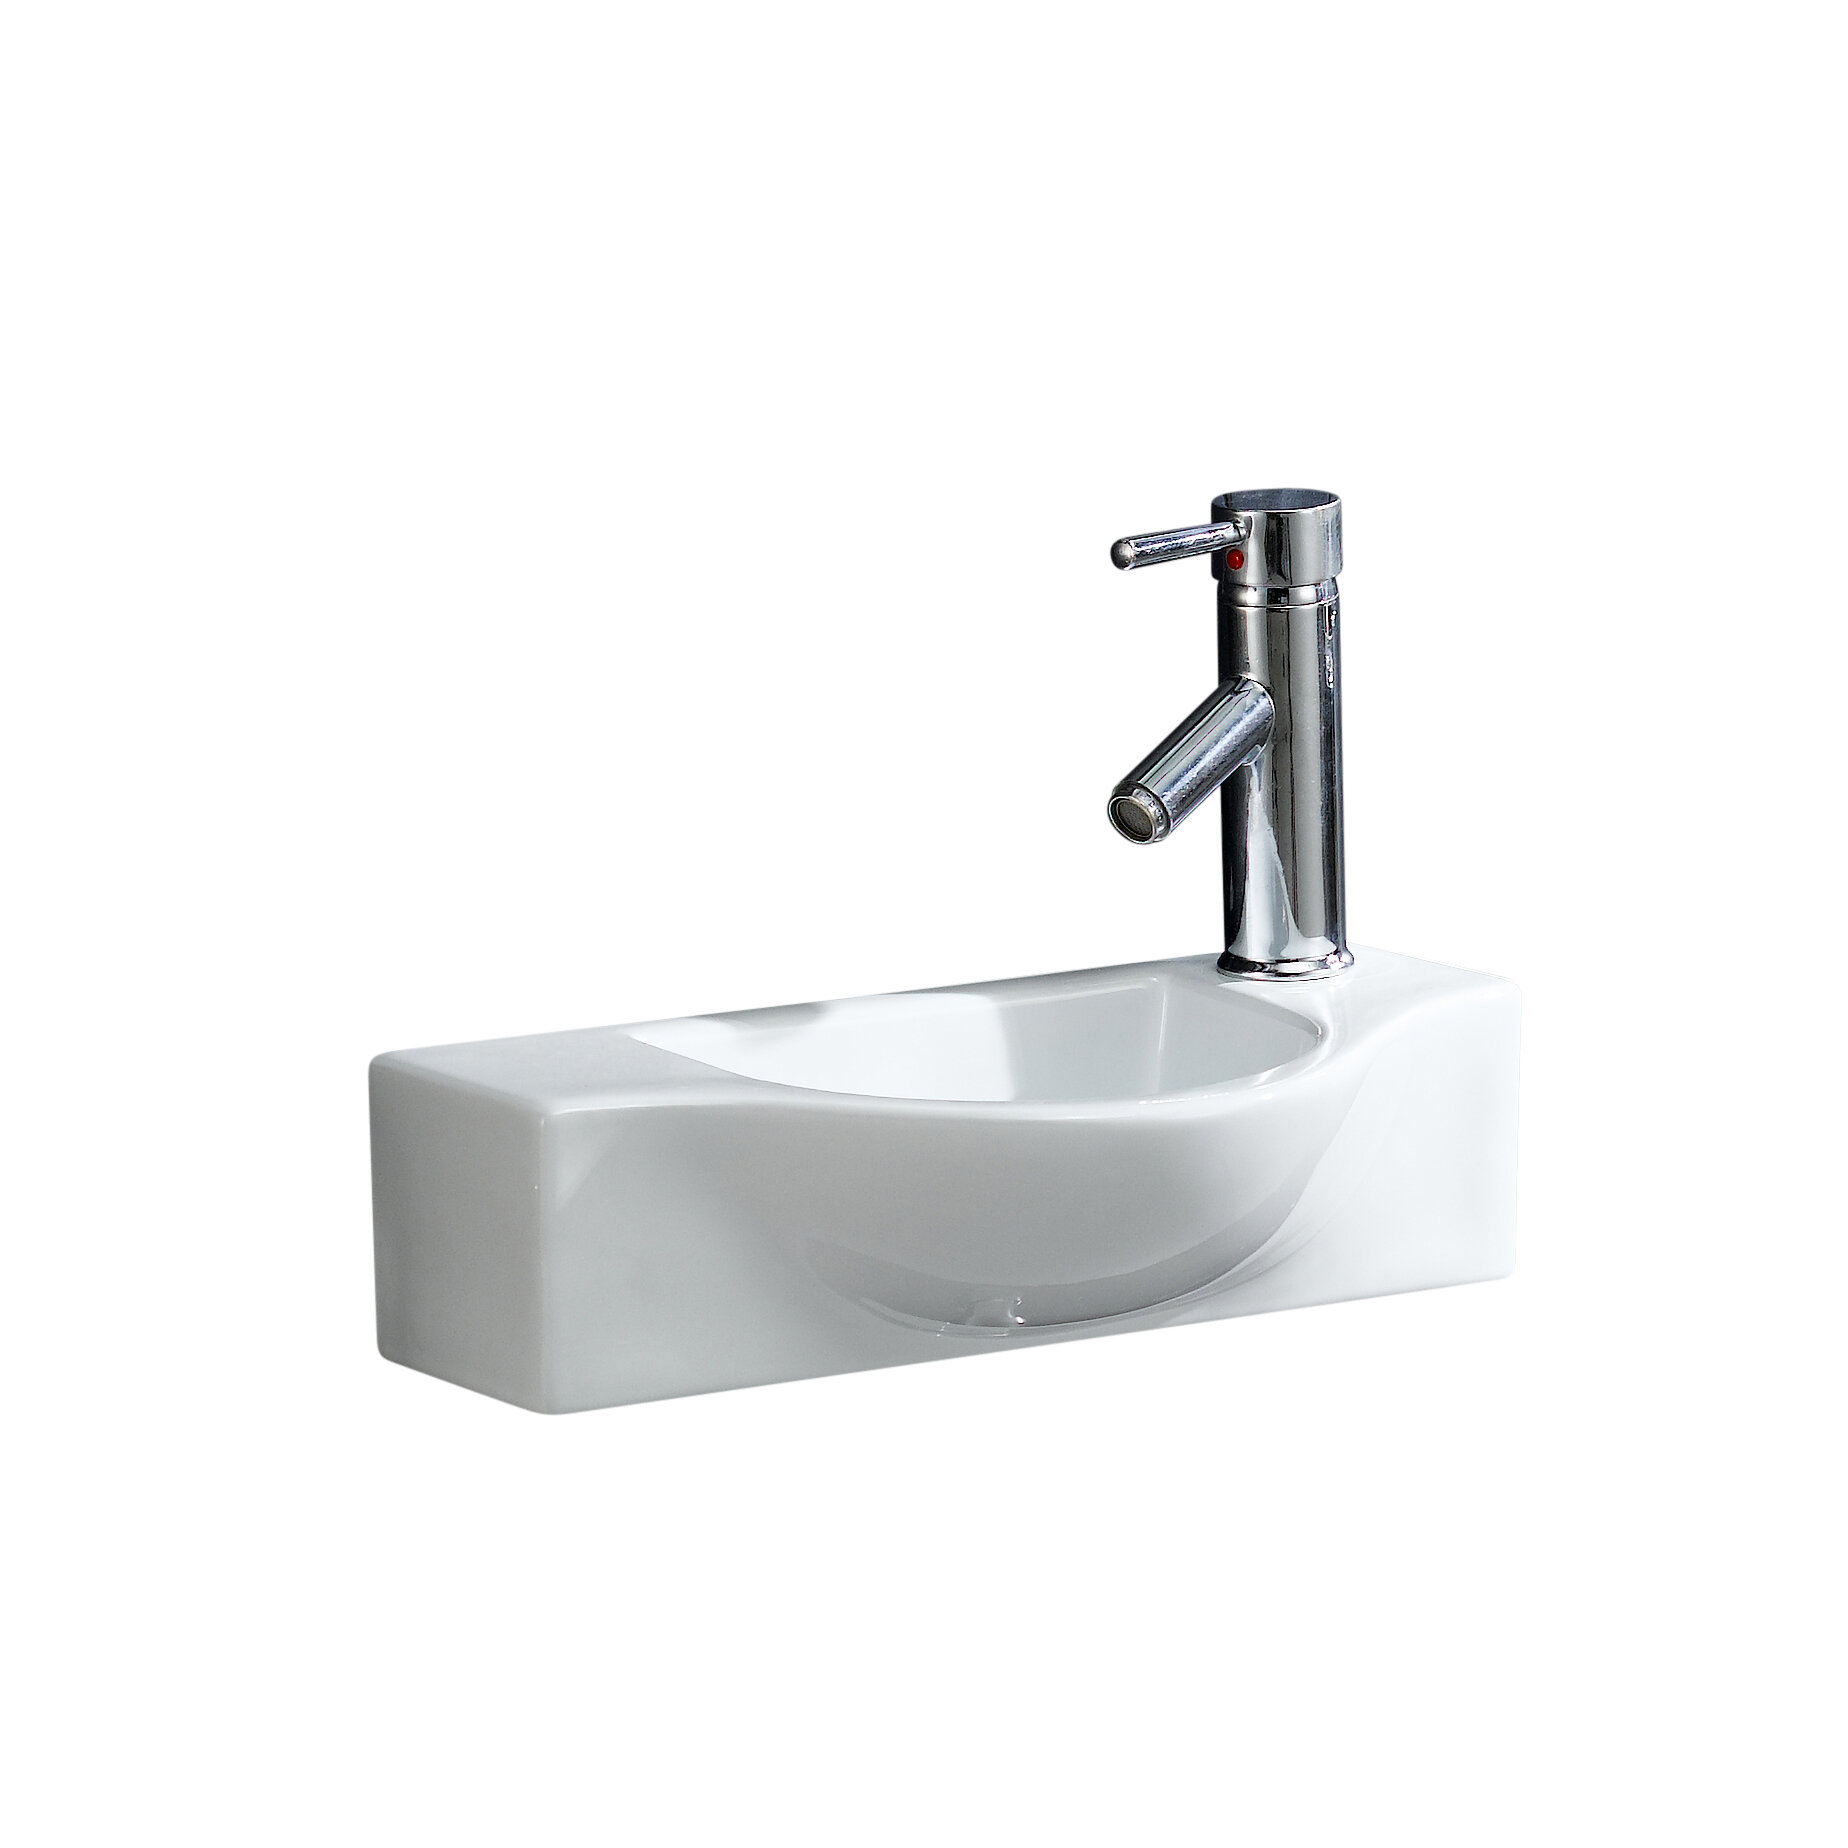 Fine Fixtures Modern Ceramic 18 Wall Mount Bathroom Sink Reviews Wayfair